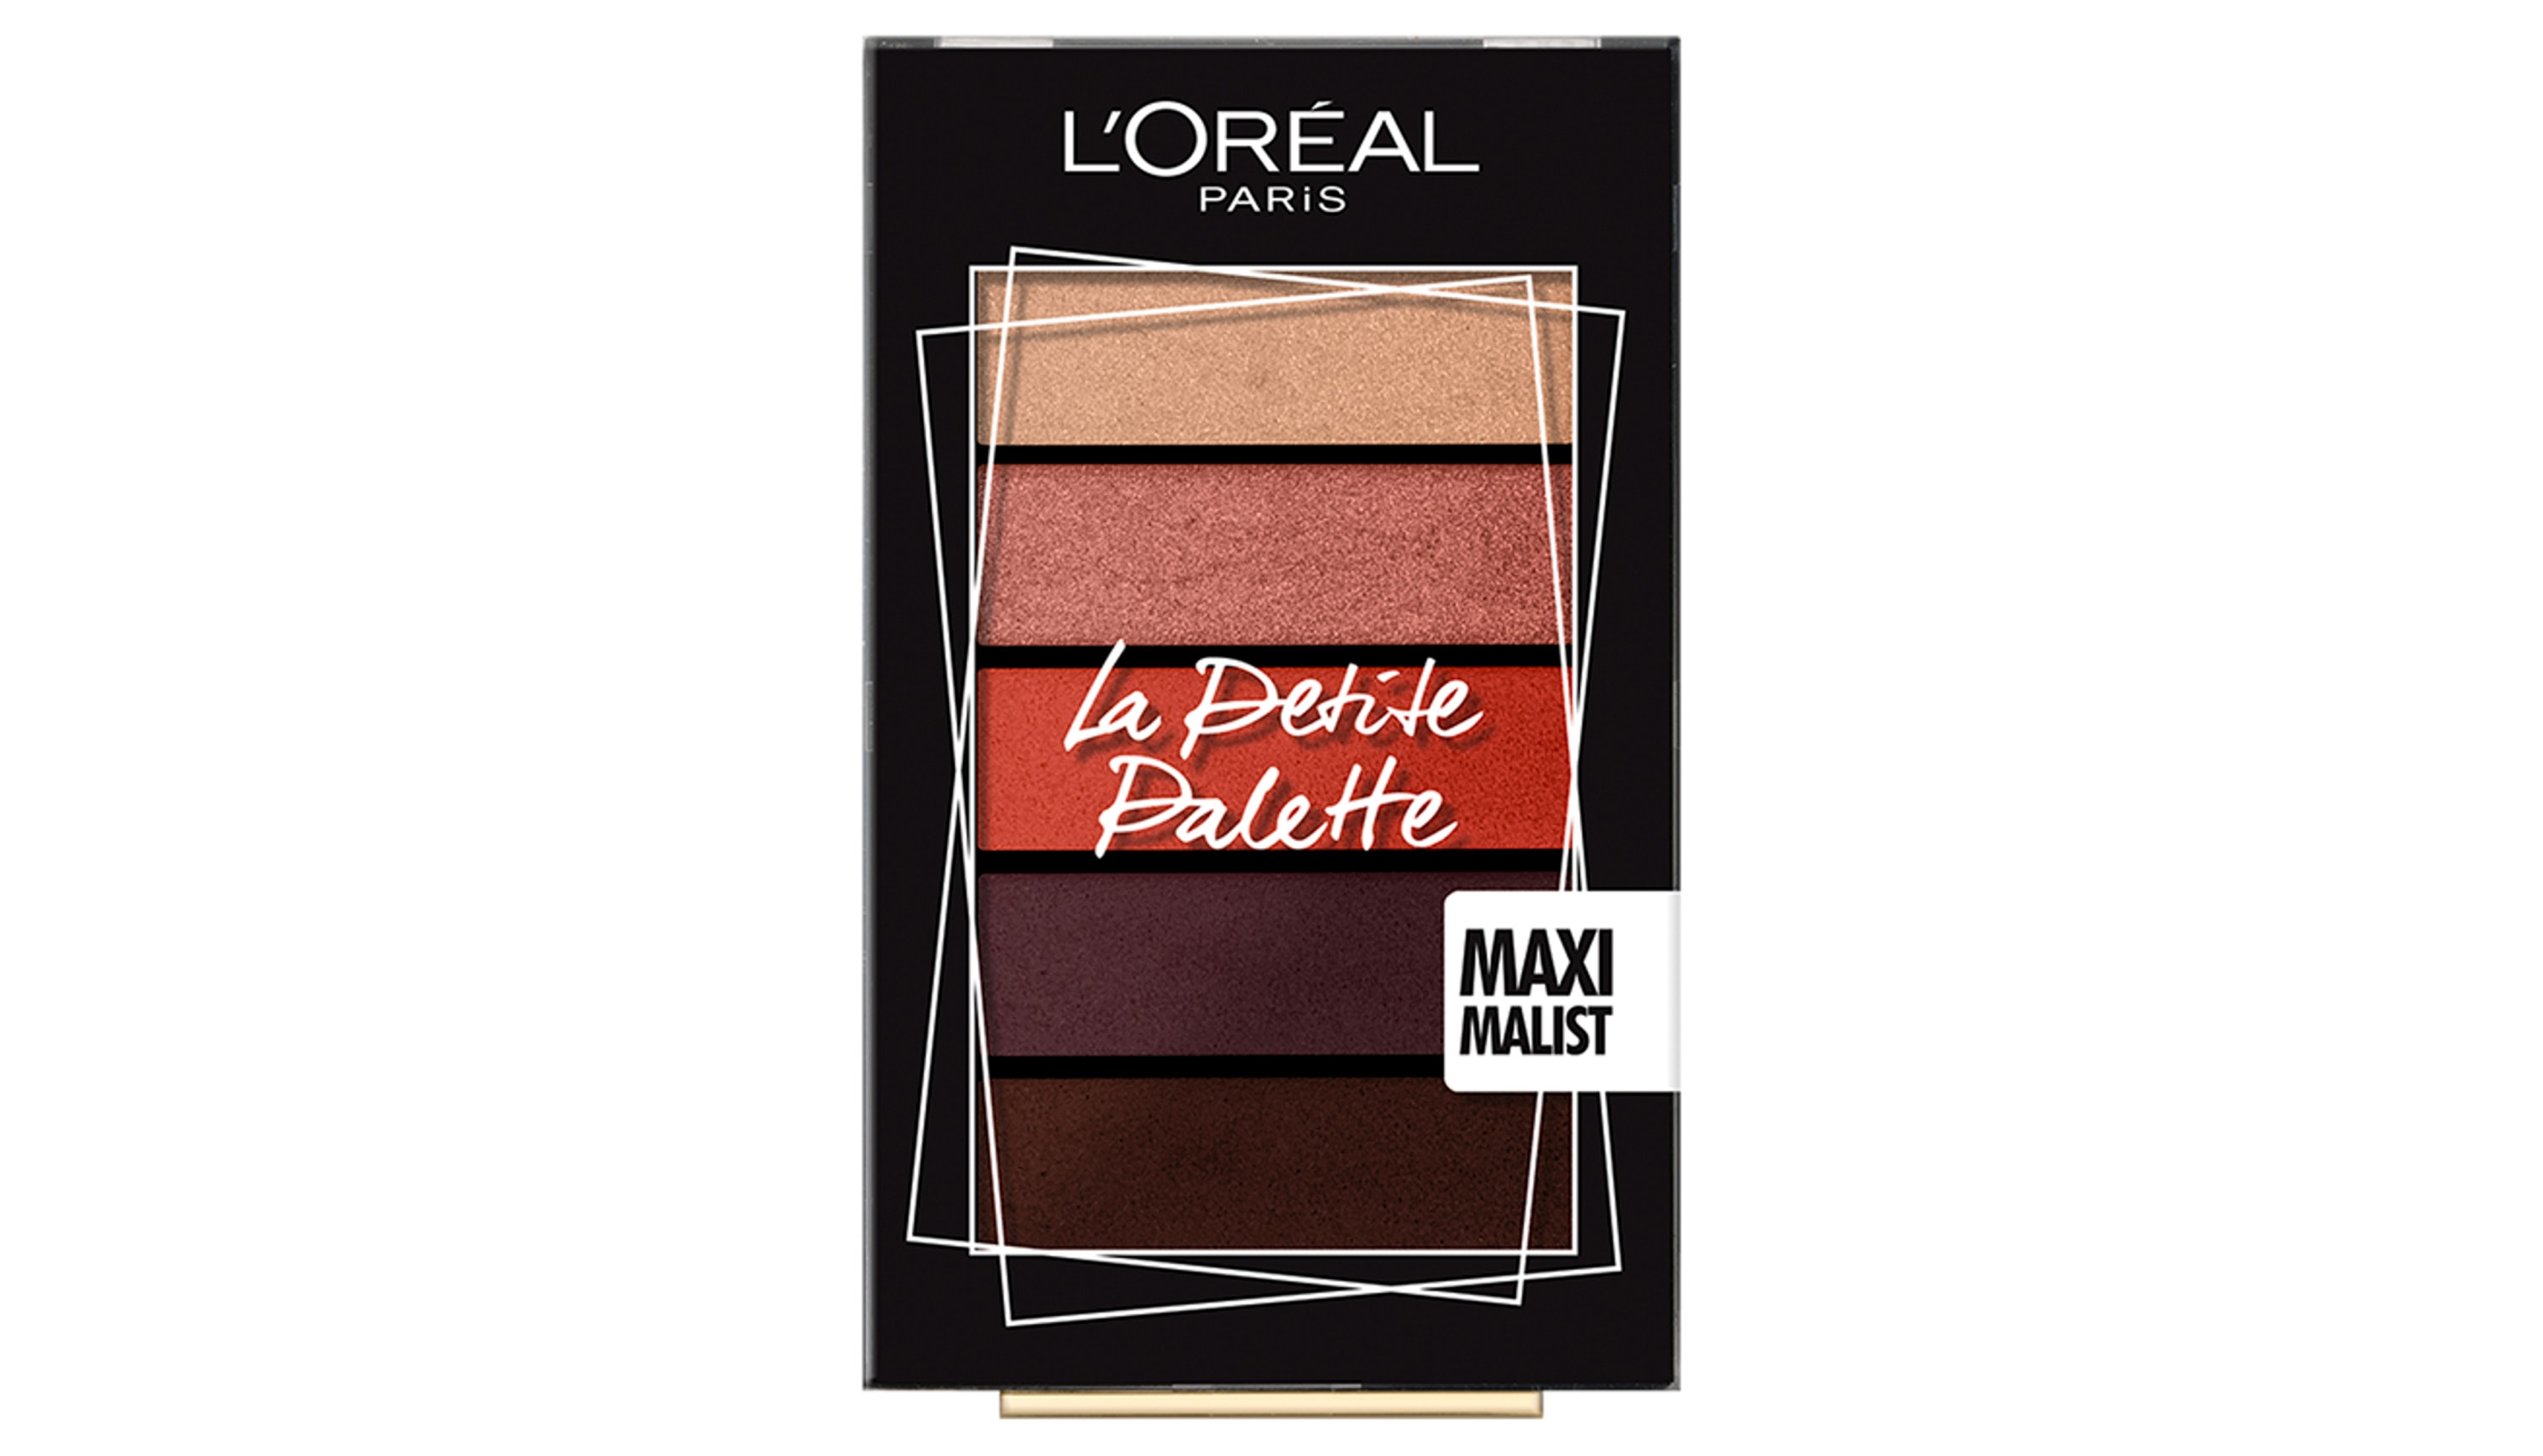 L'Oreal Paris Mini Eyeshadow Palette in Maximalist